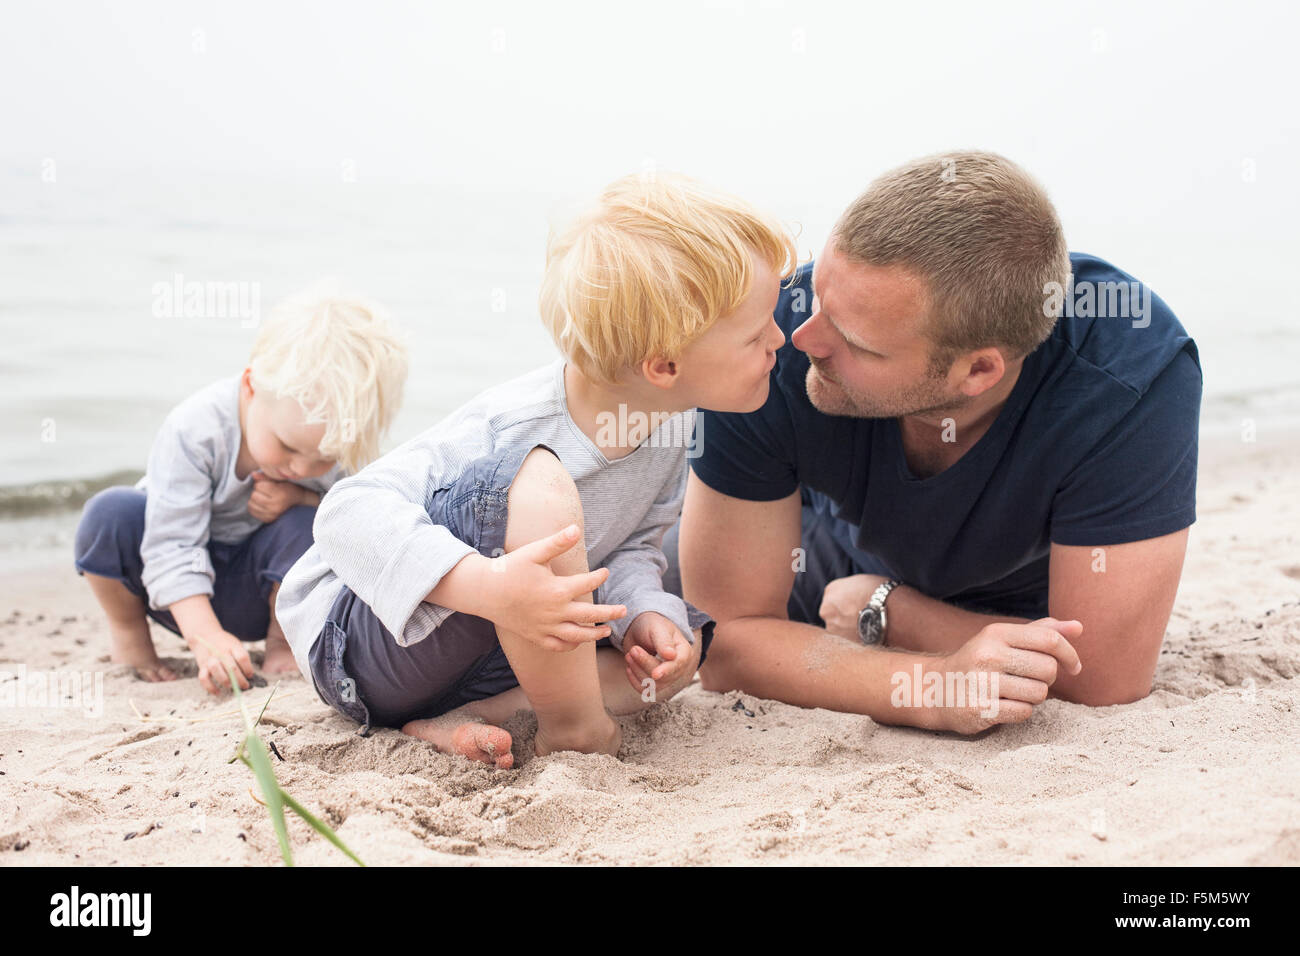 Sweden, Gotland, Ljugarn, Two boys (2-3, 4-5) spending time with man on beach - Stock Image